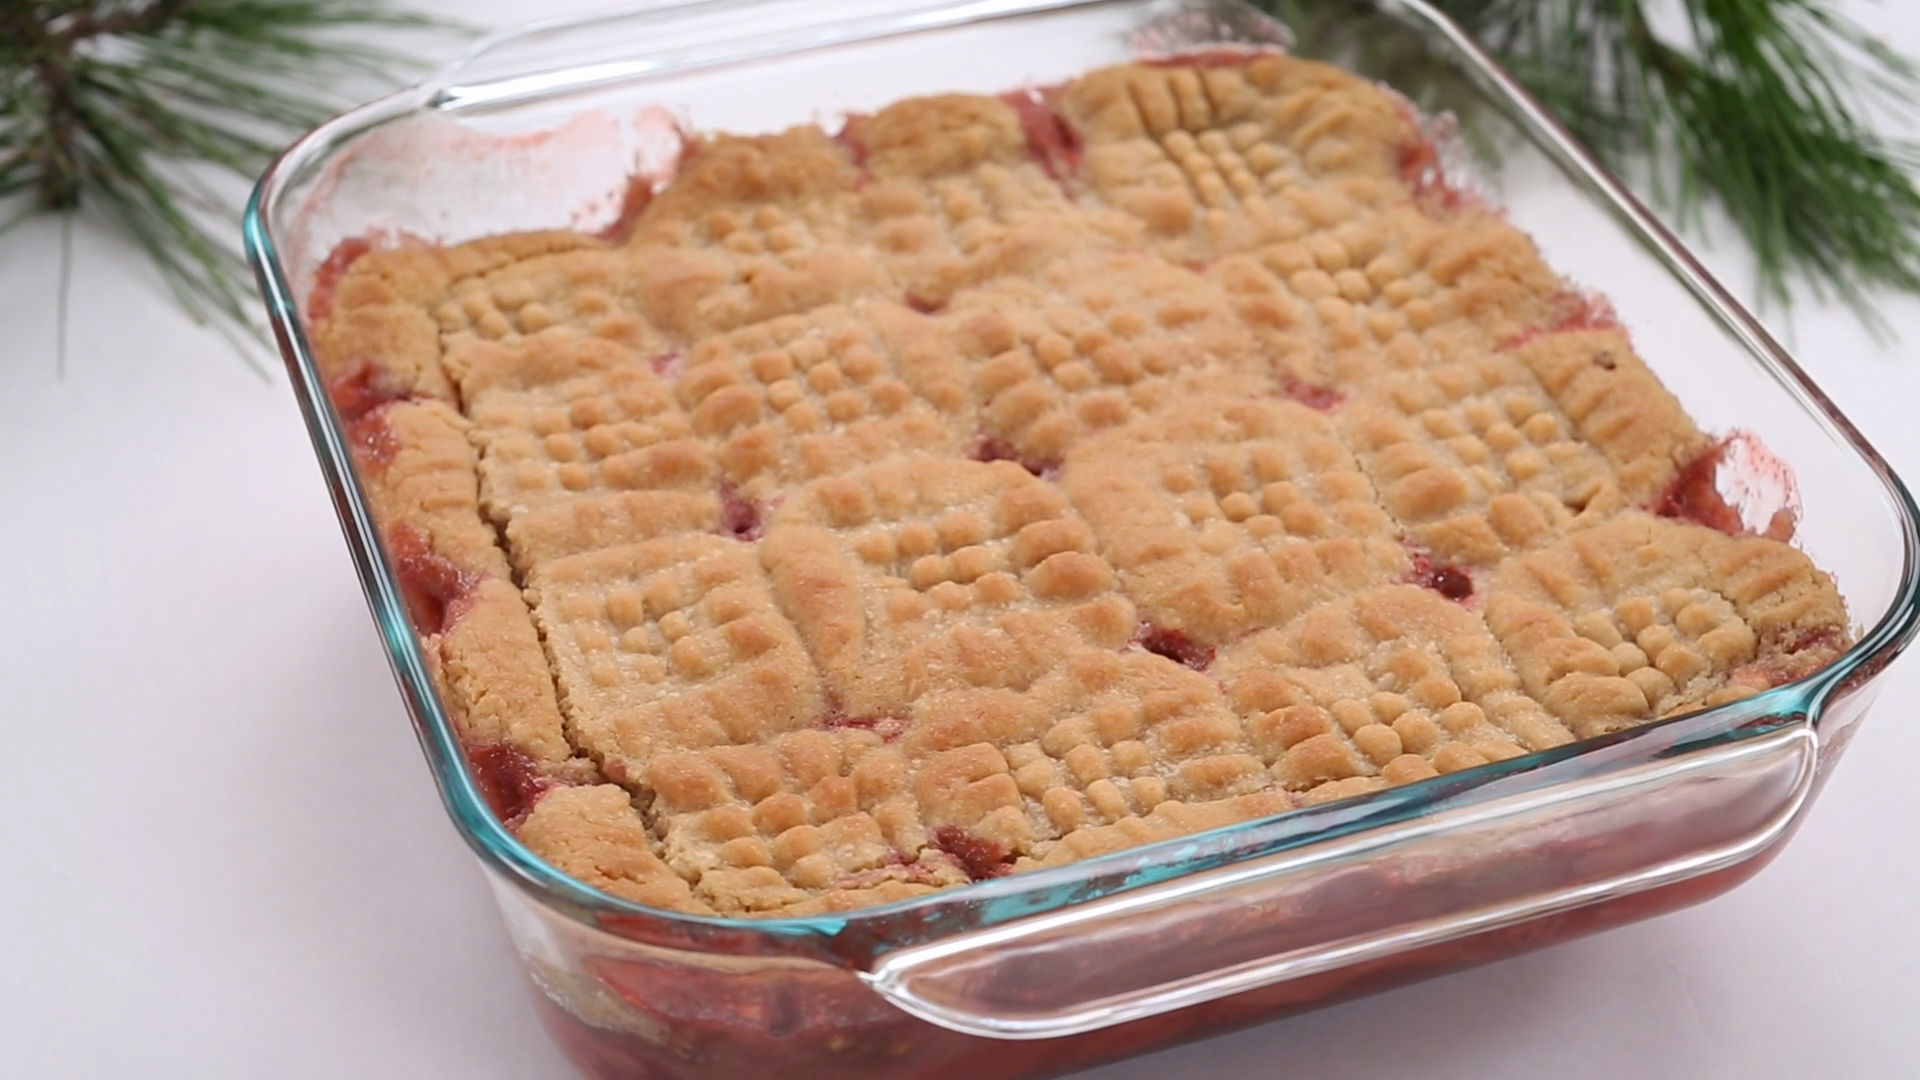 Pete's Dragon PB&J Cobbler | Dishes by Disney